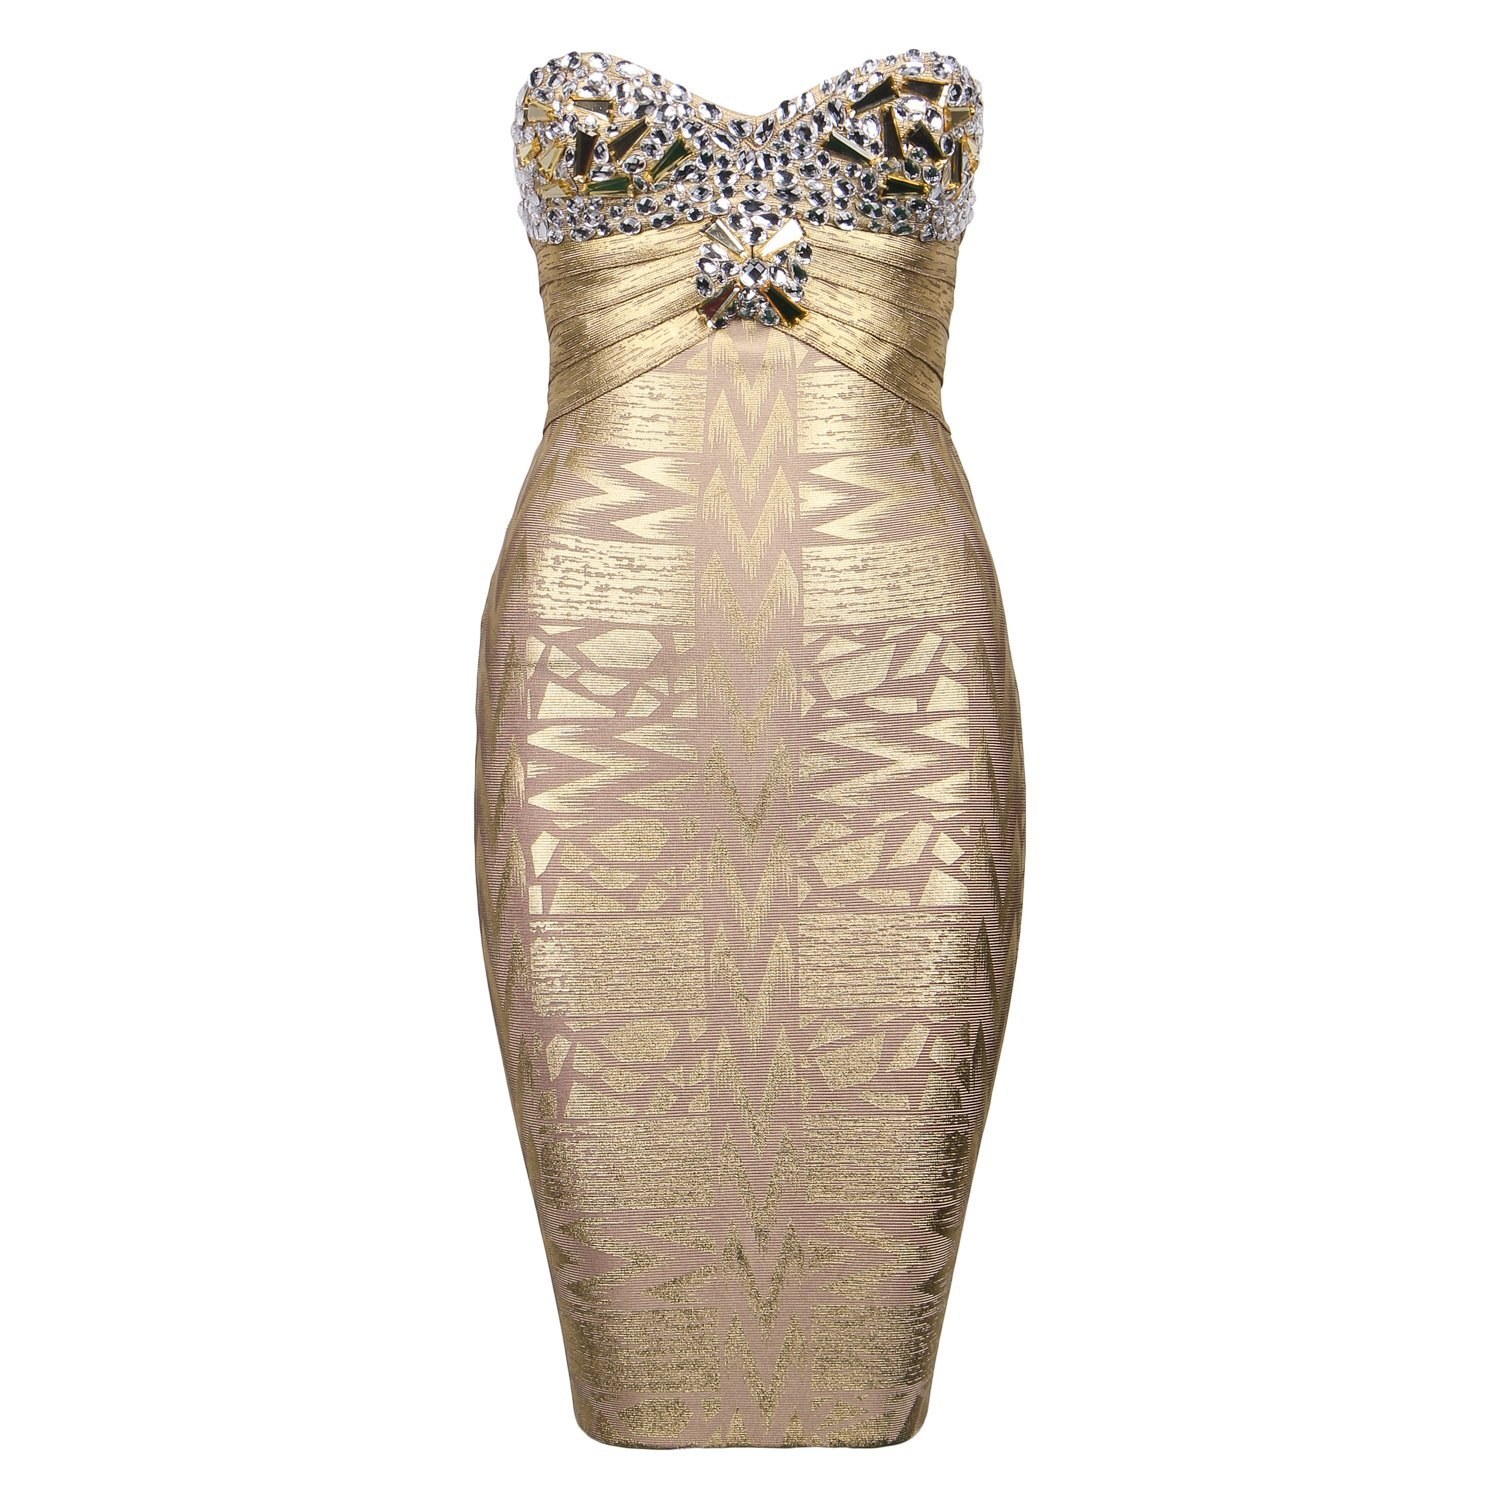 Ifashion Women's Rayon Strapless Beaded Foil Bodycon Bandage Mini Party Dress Gold Size US 6